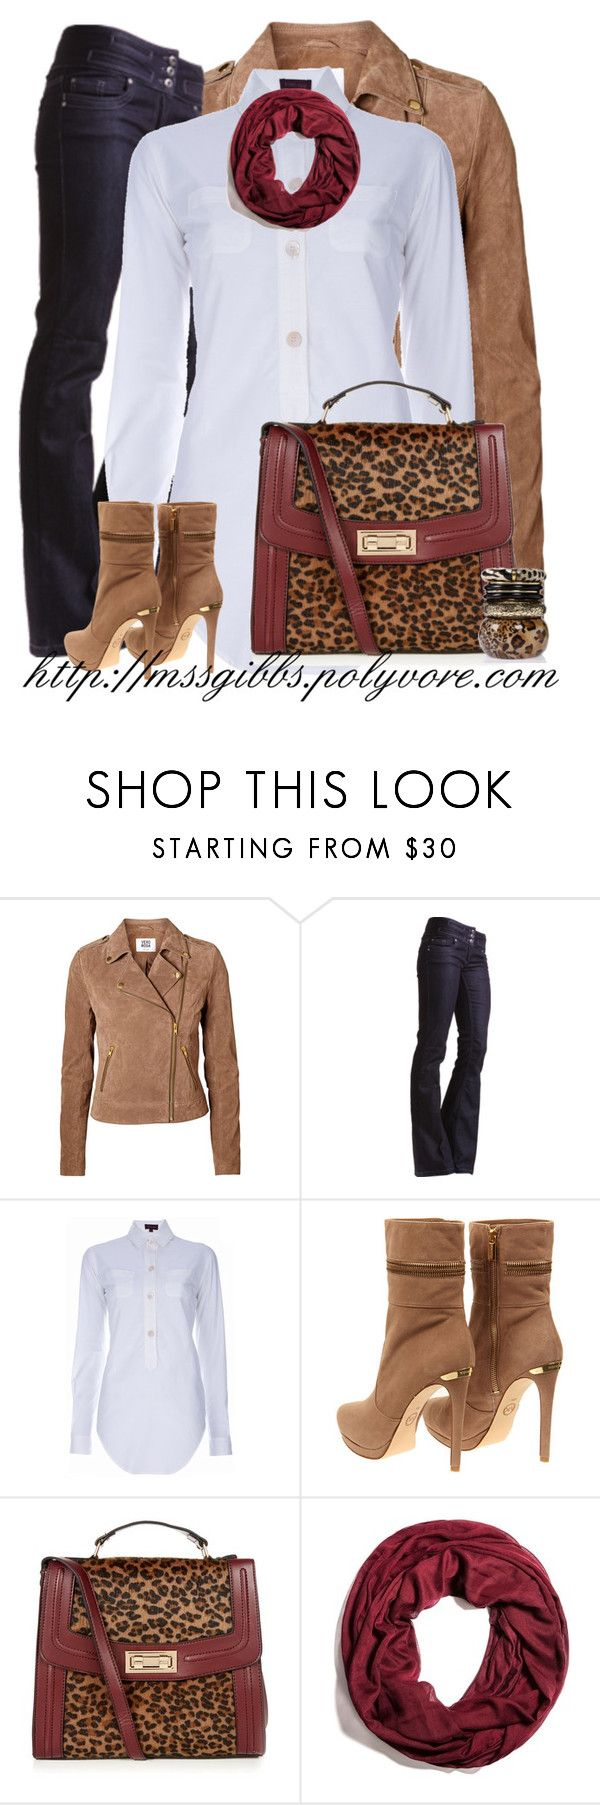 """""""MK Boots"""" by mssgibbs ❤ liked on Polyvore featuring Vero Moda, DEPT, Romeo Gigli, MICHAEL Michael Kors and GUESS by Marciano"""